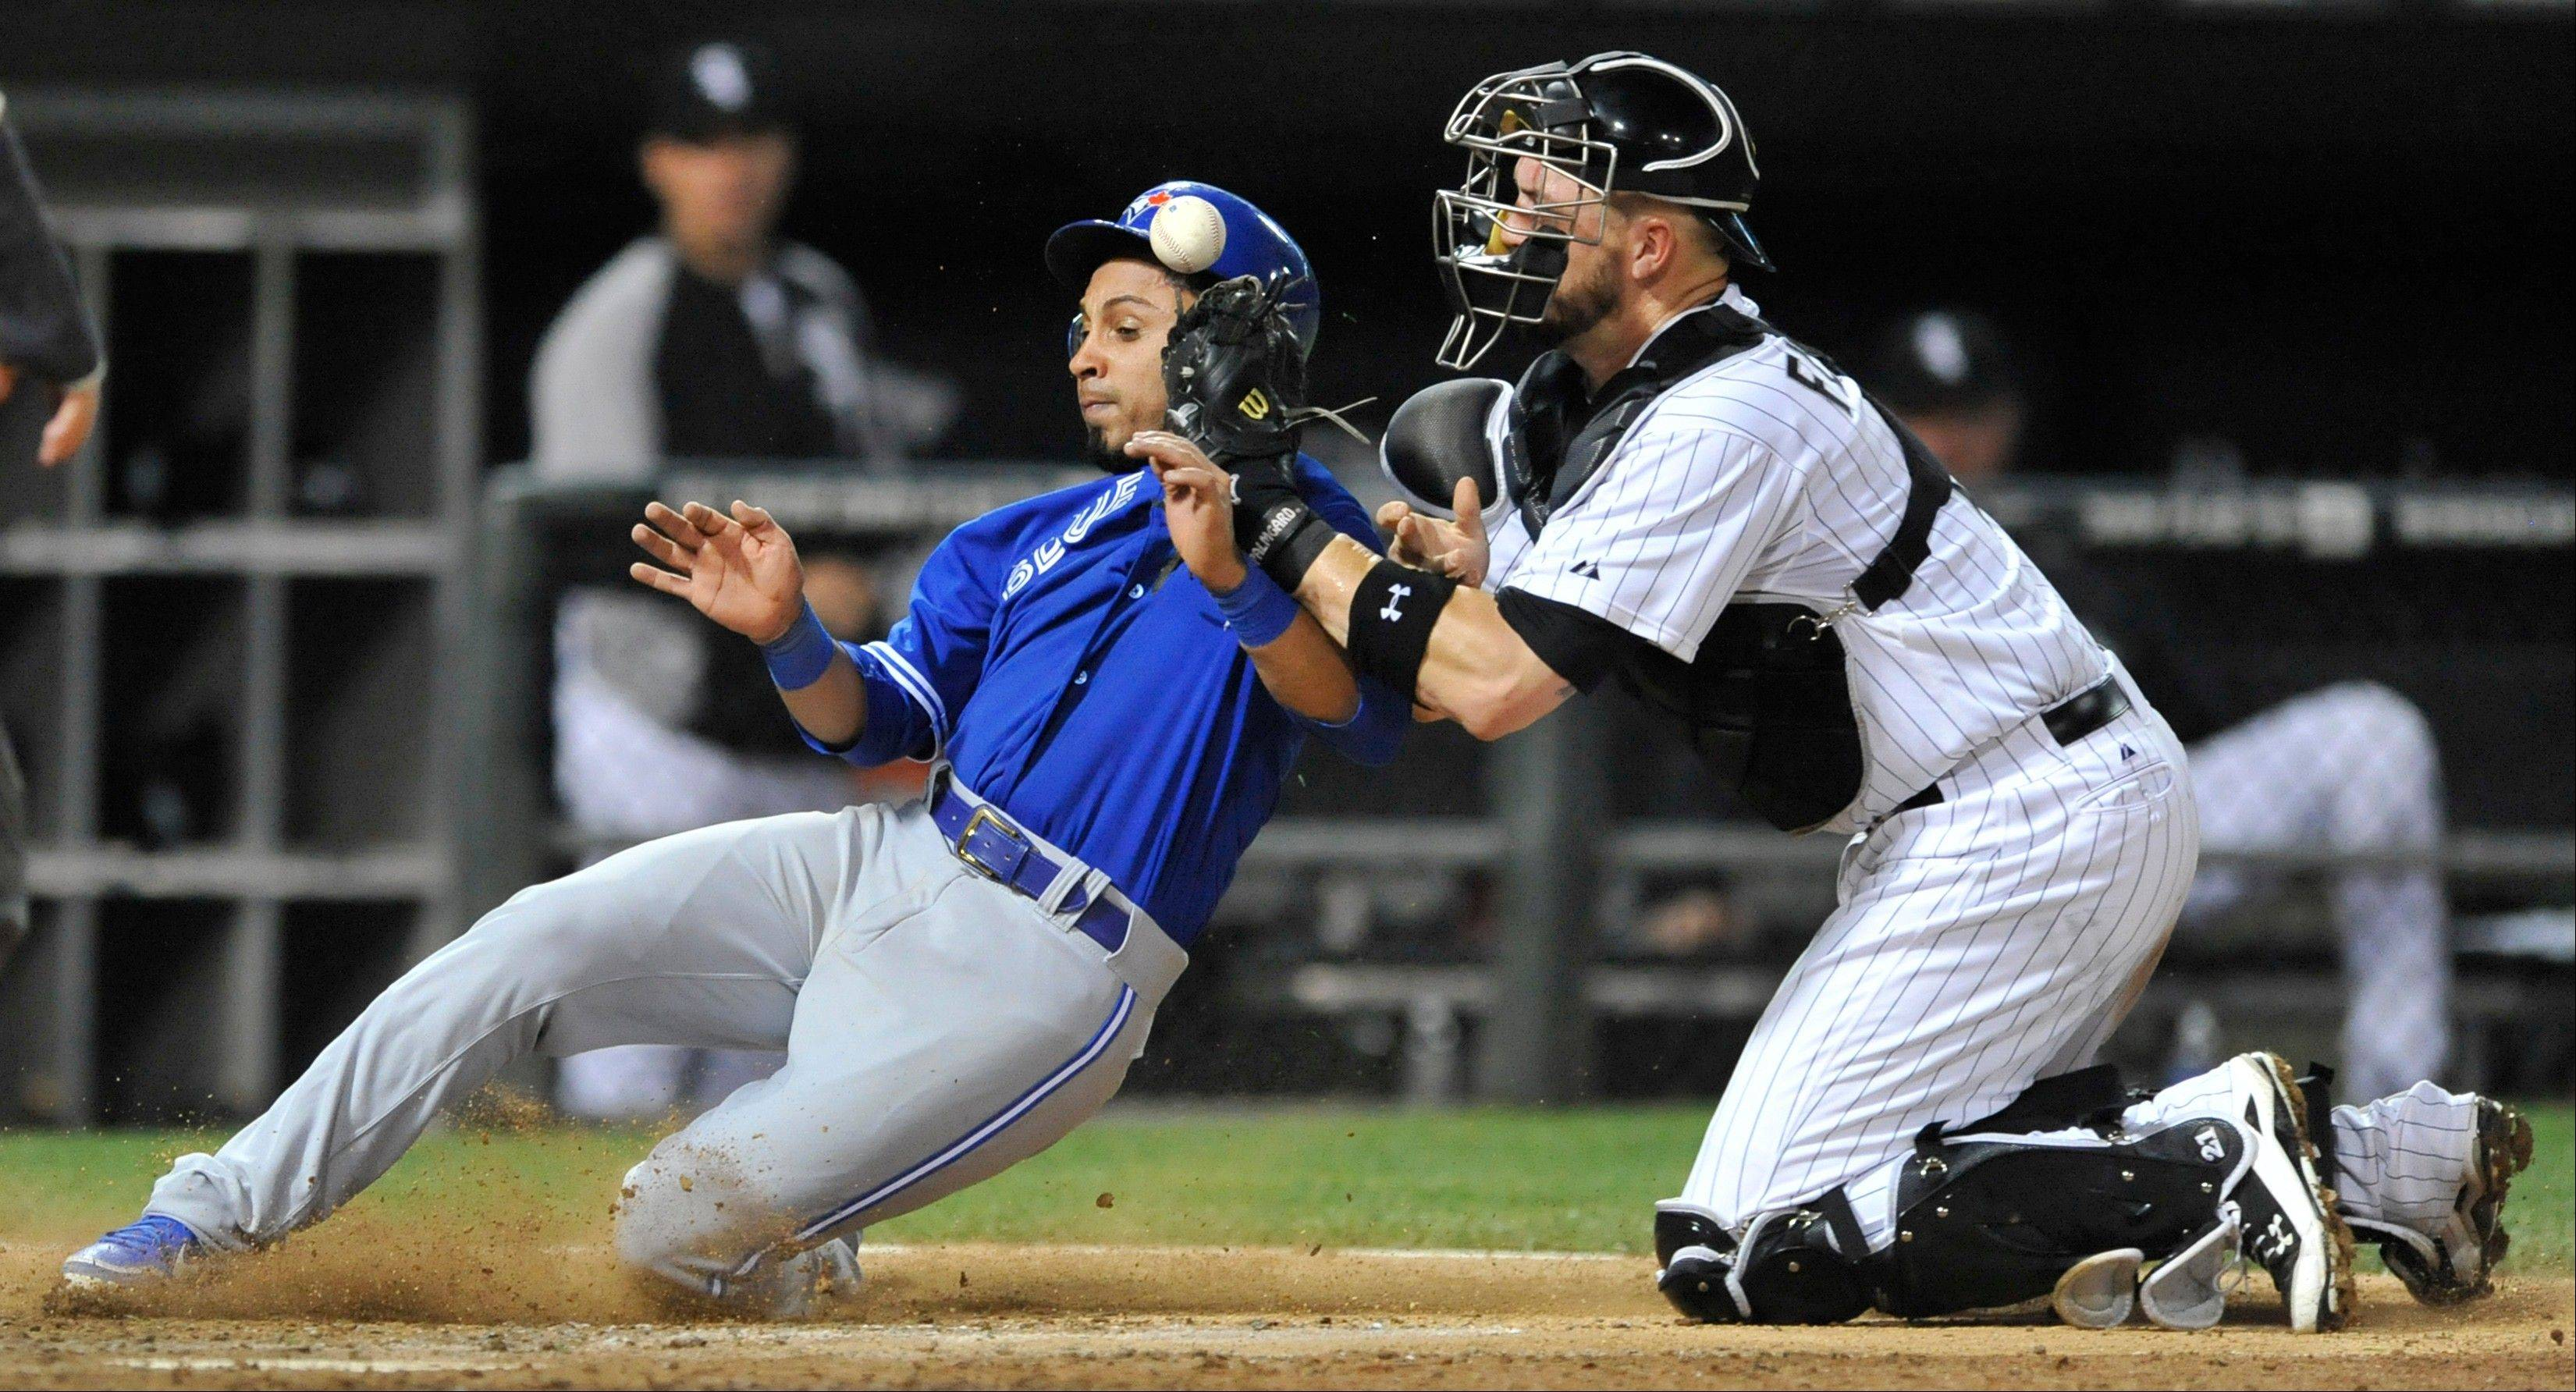 Toronto Blue Jays' Maicer Izturis scores on a Munenori Kawasaki double as Tyler Flowers tries to apply the tag during the 10th inning of the White Sox' loss to Toronto on Tuesday at U.S. Cellular Field.